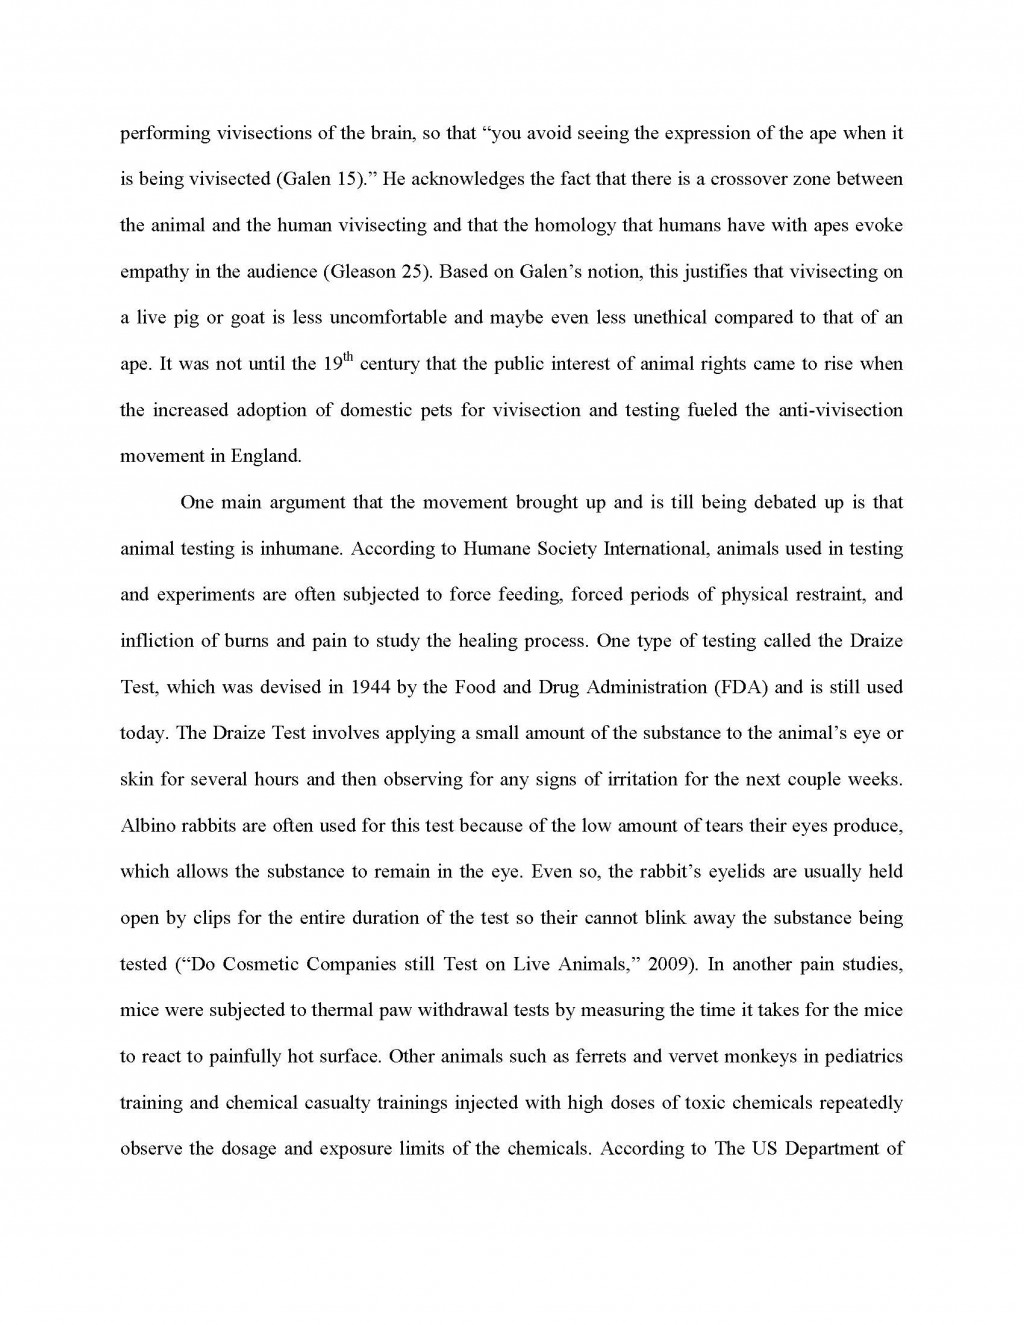 007 Essay Example Against Animal Testing Final Page 2 Imposing Introduction Persuasive Titles Large